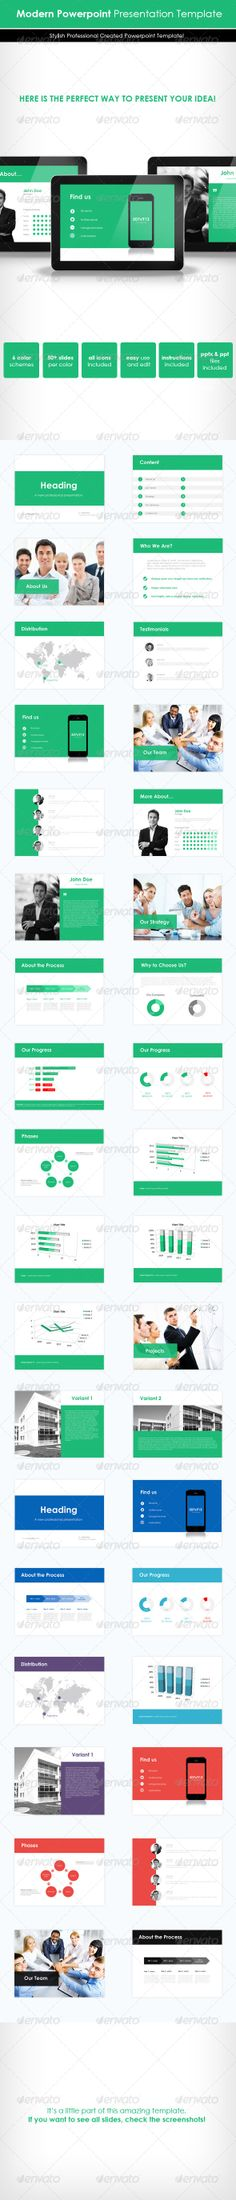 Davila PowerPoint, Presentation Template by Sooyoomboo Soyombo - powerpoint presentation